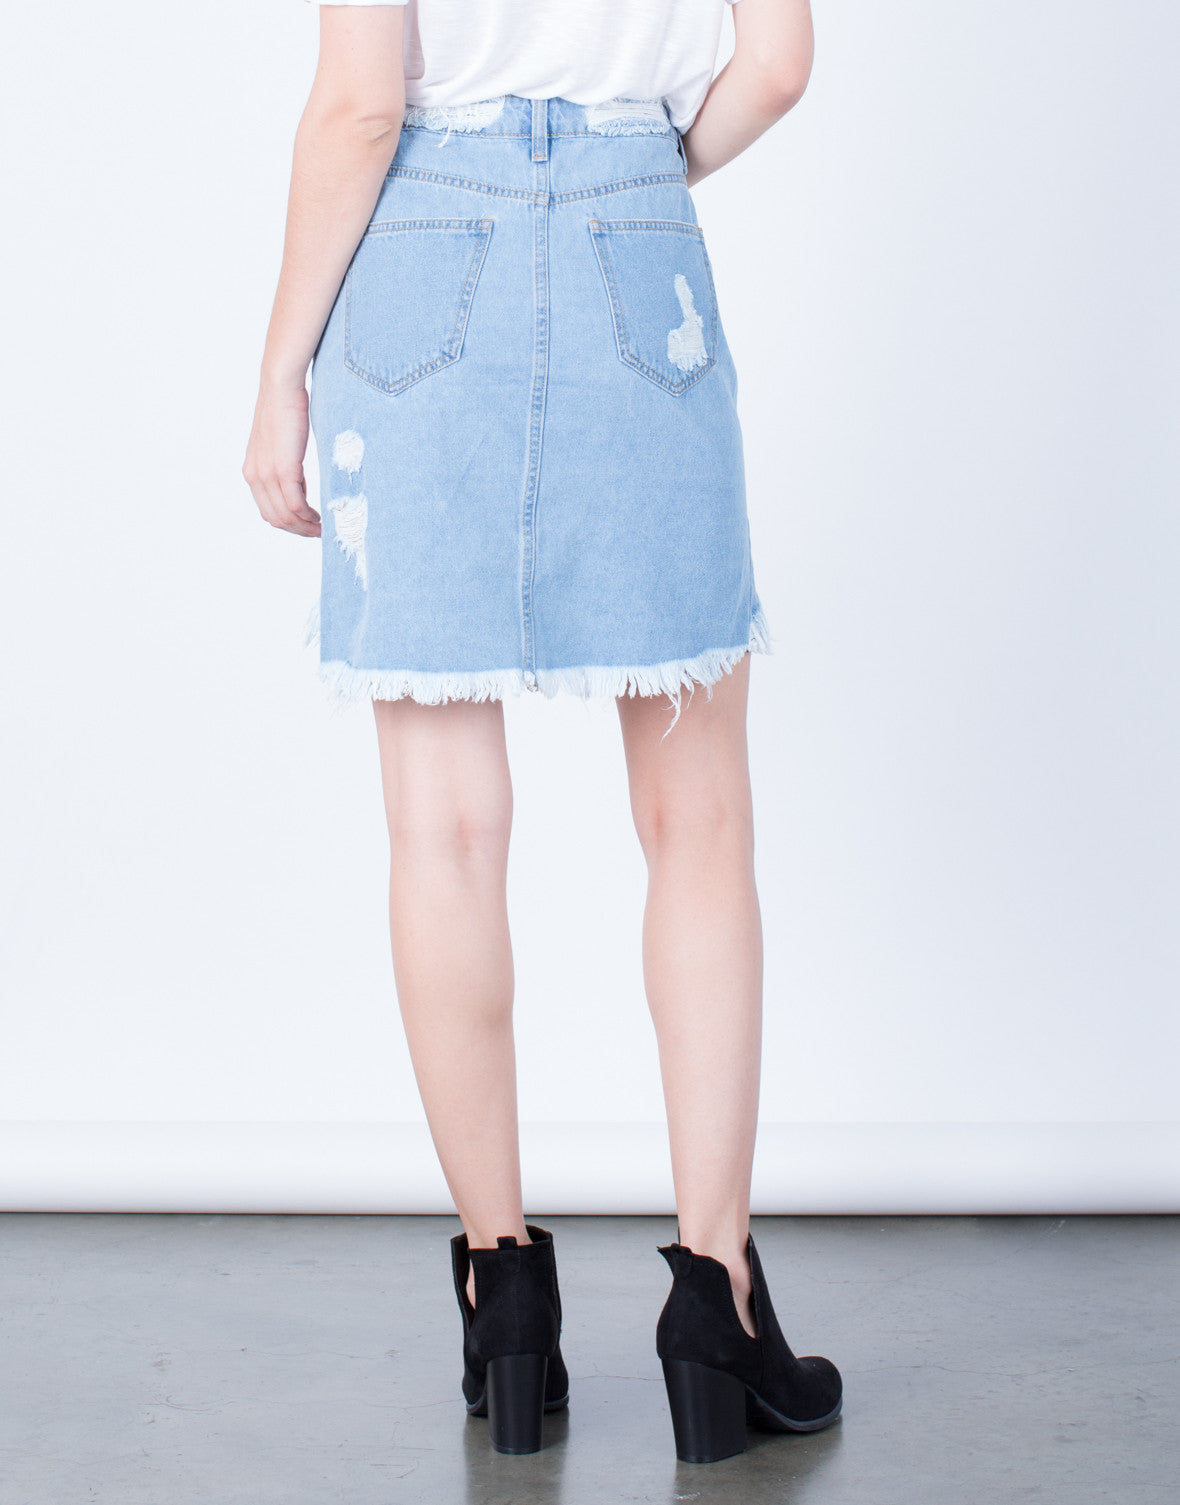 Back View of Destroyed Denim Skirt